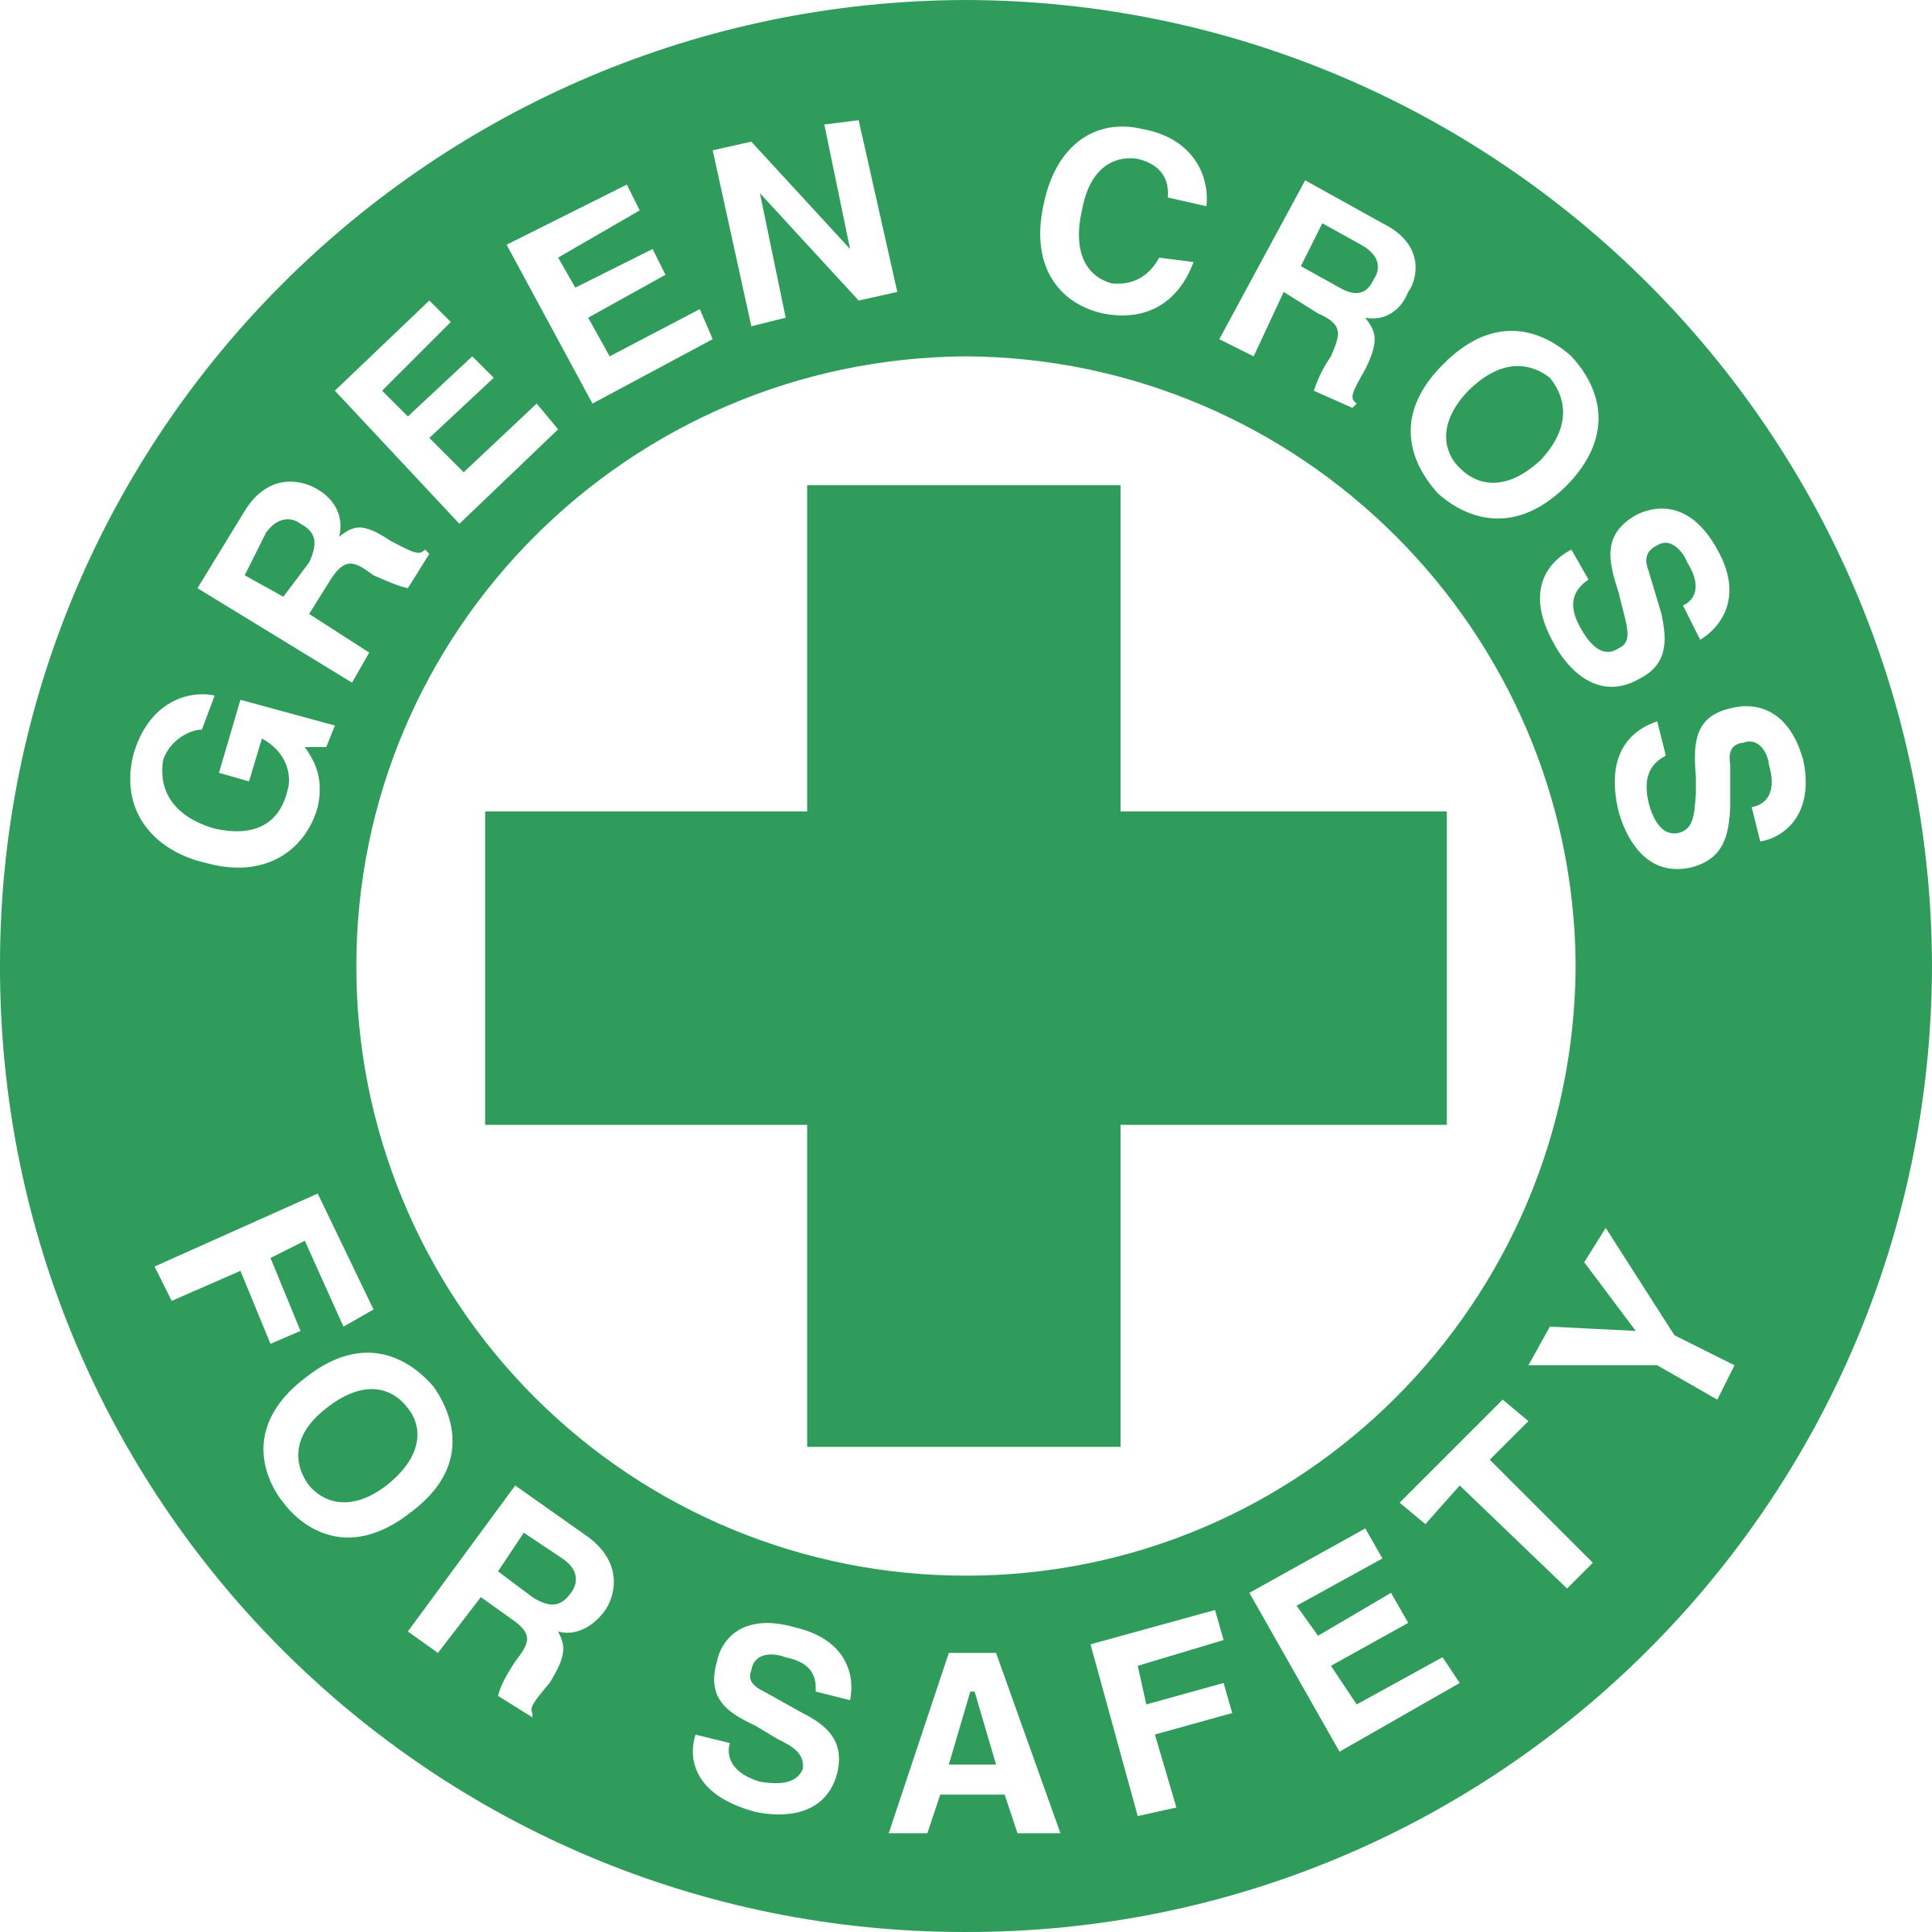 green cross for safety logo png transparent svg vector freebie rh freebiesupply com safety logos slogans safety logos pictures